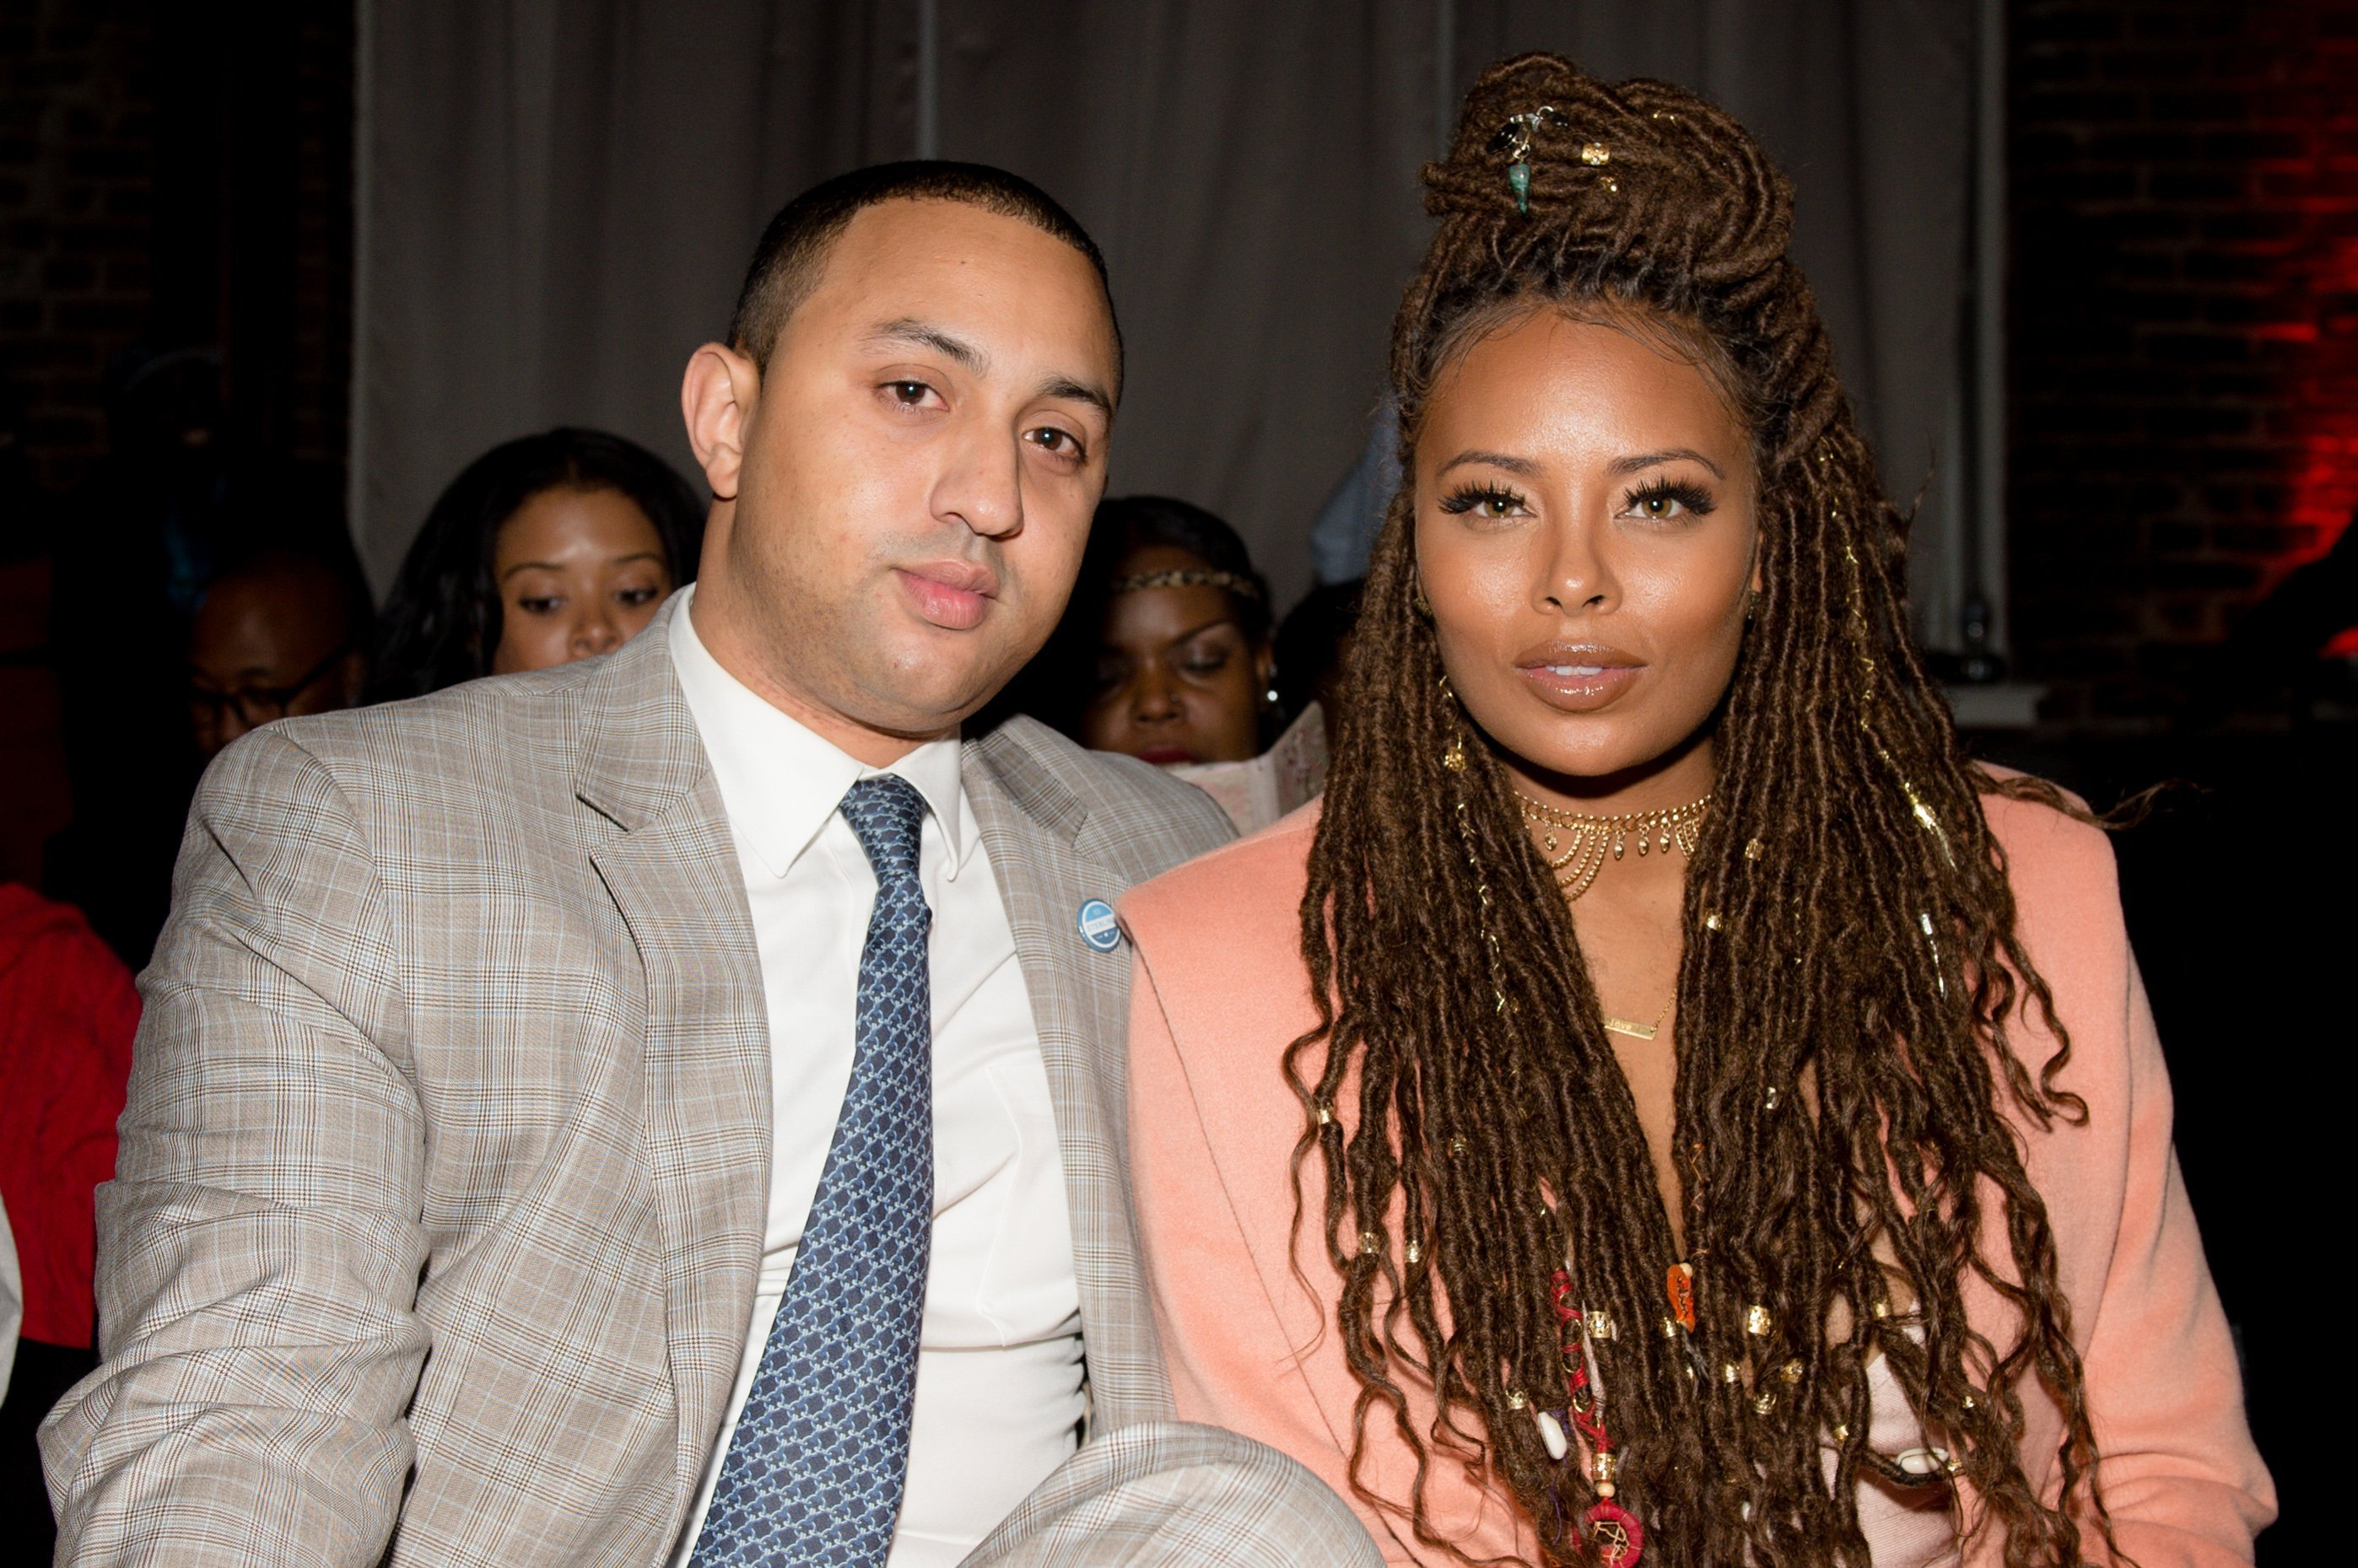 Michael Sterling & Eva Marcille at the 9th Annual Celebration 4 A Cause Fashion Show on Dec. 22, 2016 in Atlanta, Georgia   Photo: Getty Images